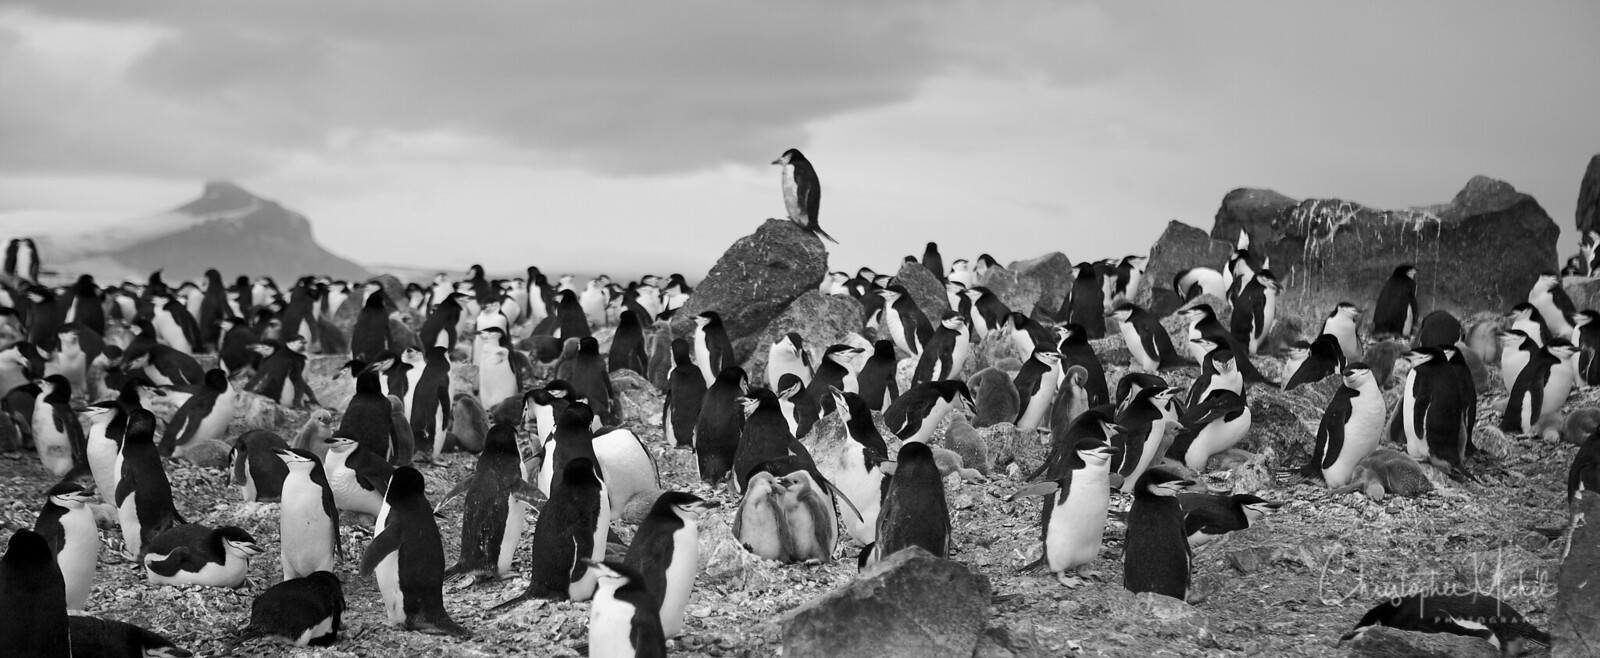 King of the Rookery